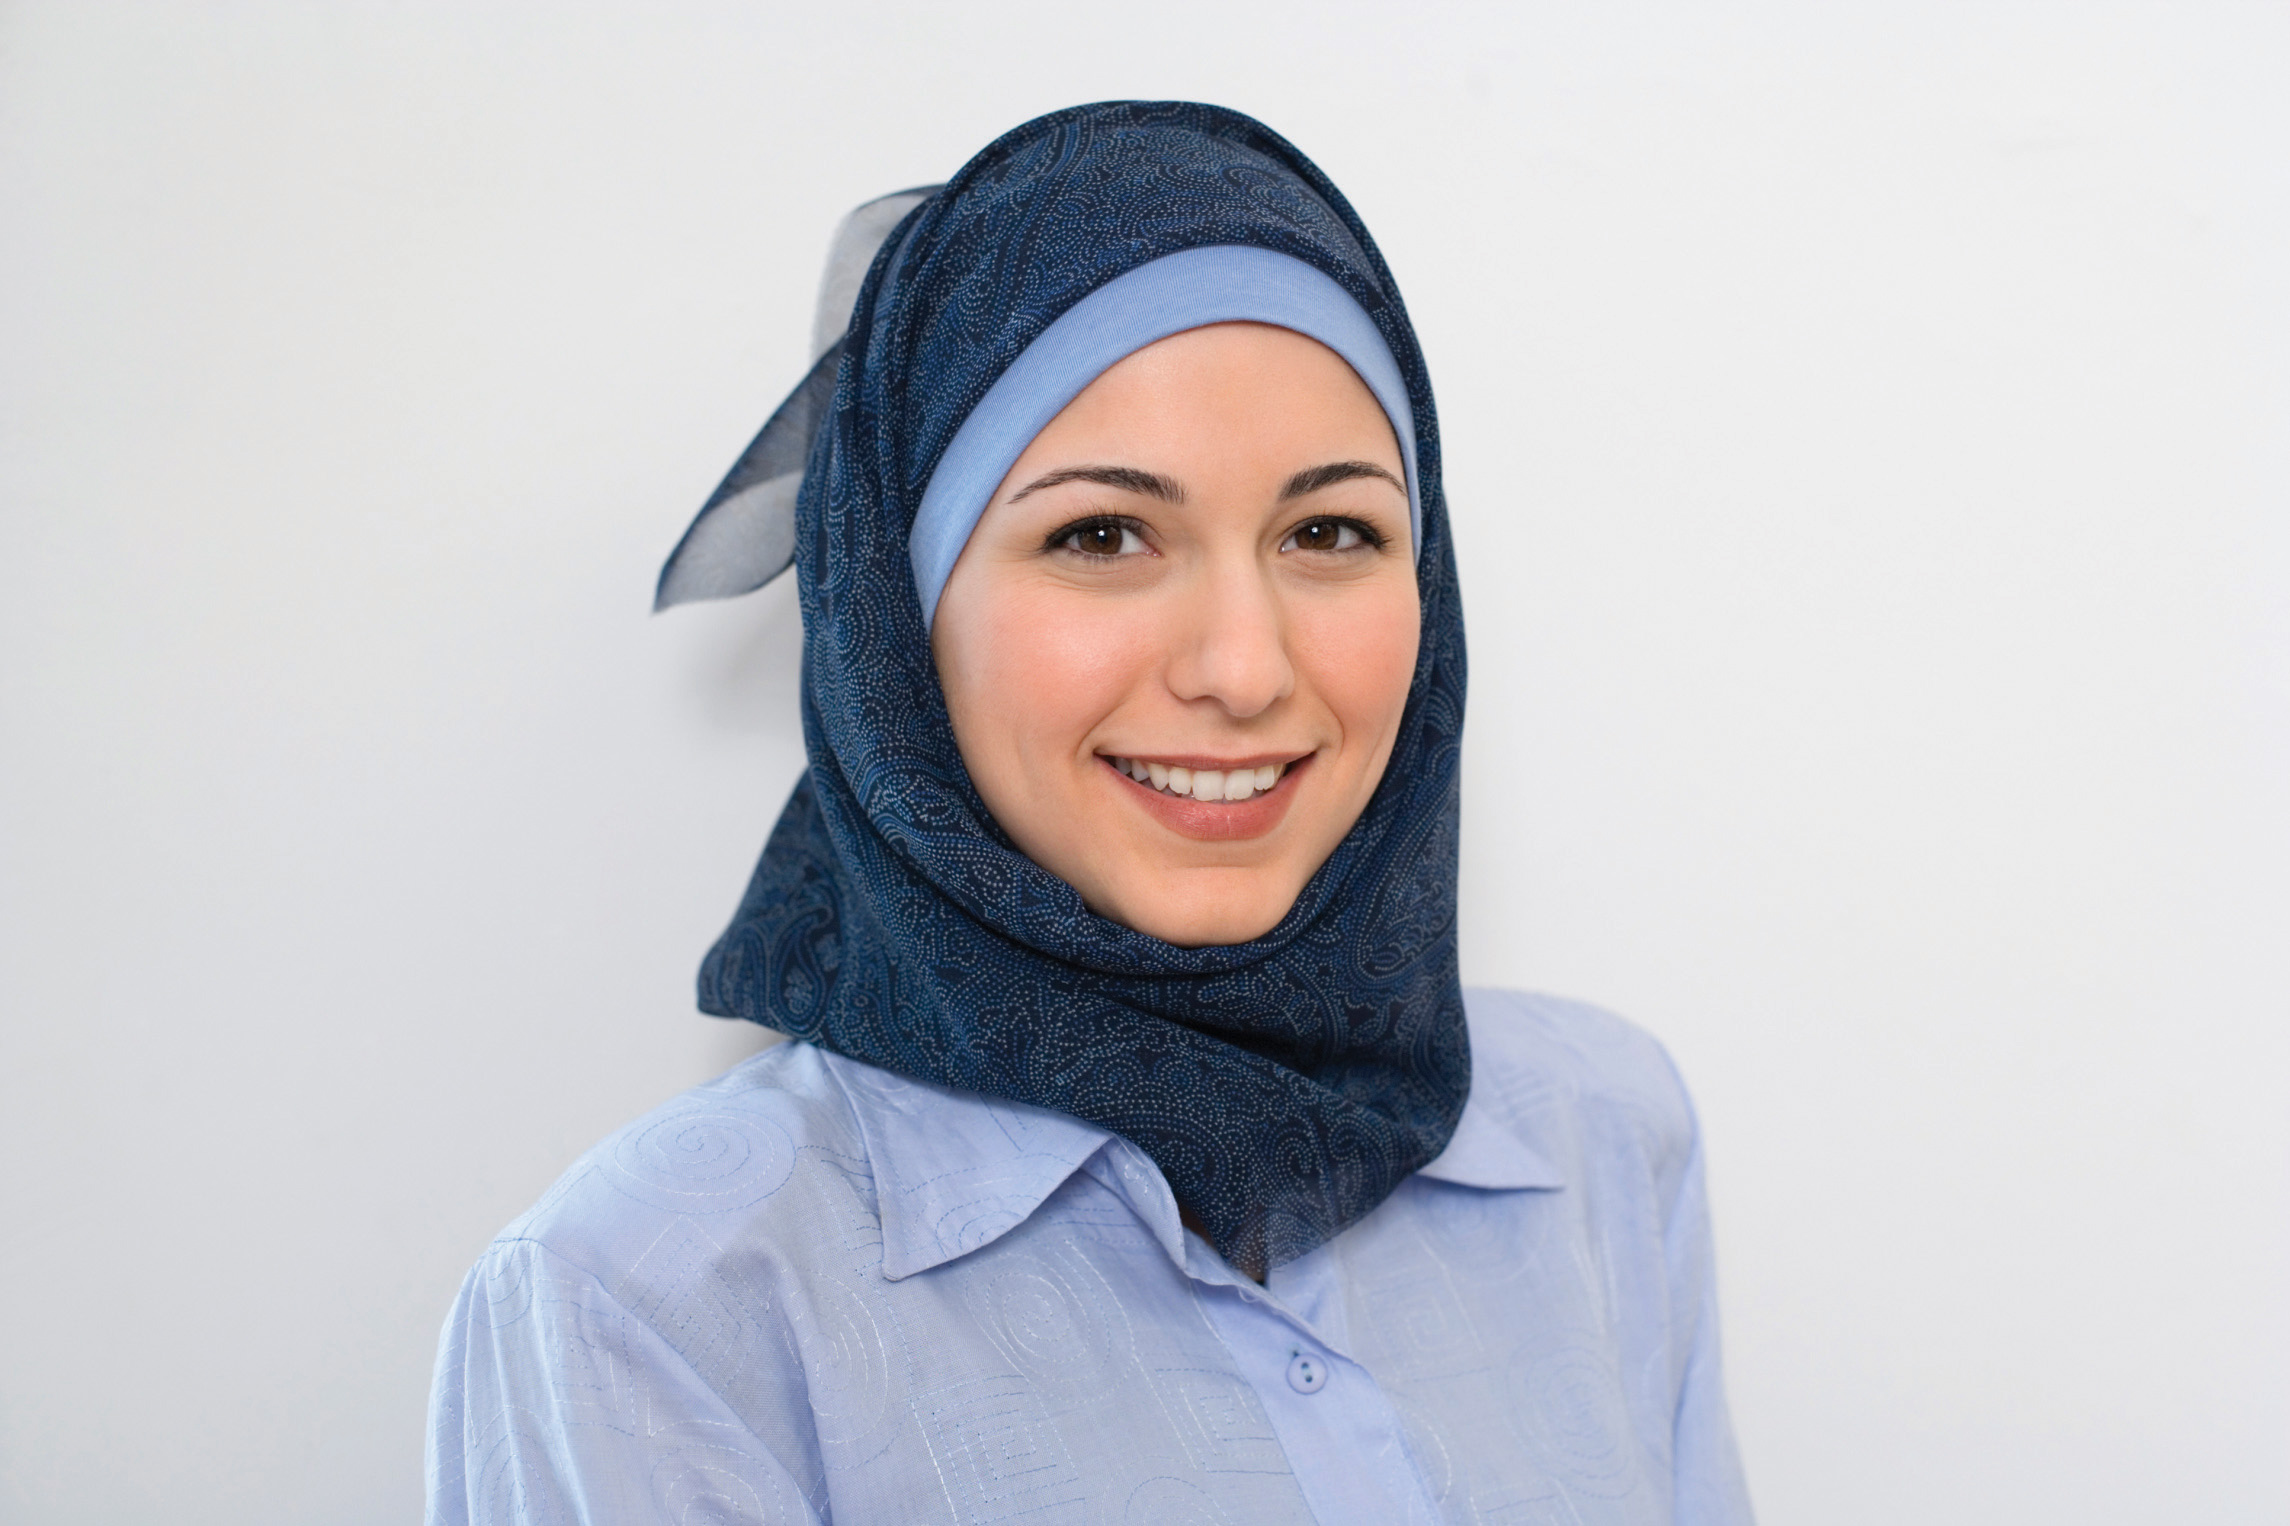 shellman single muslim girls A qualitative exploration of adolescent girls' experience in an eating disorder prevention  comparison of single-use and multiple-use electrodes for .